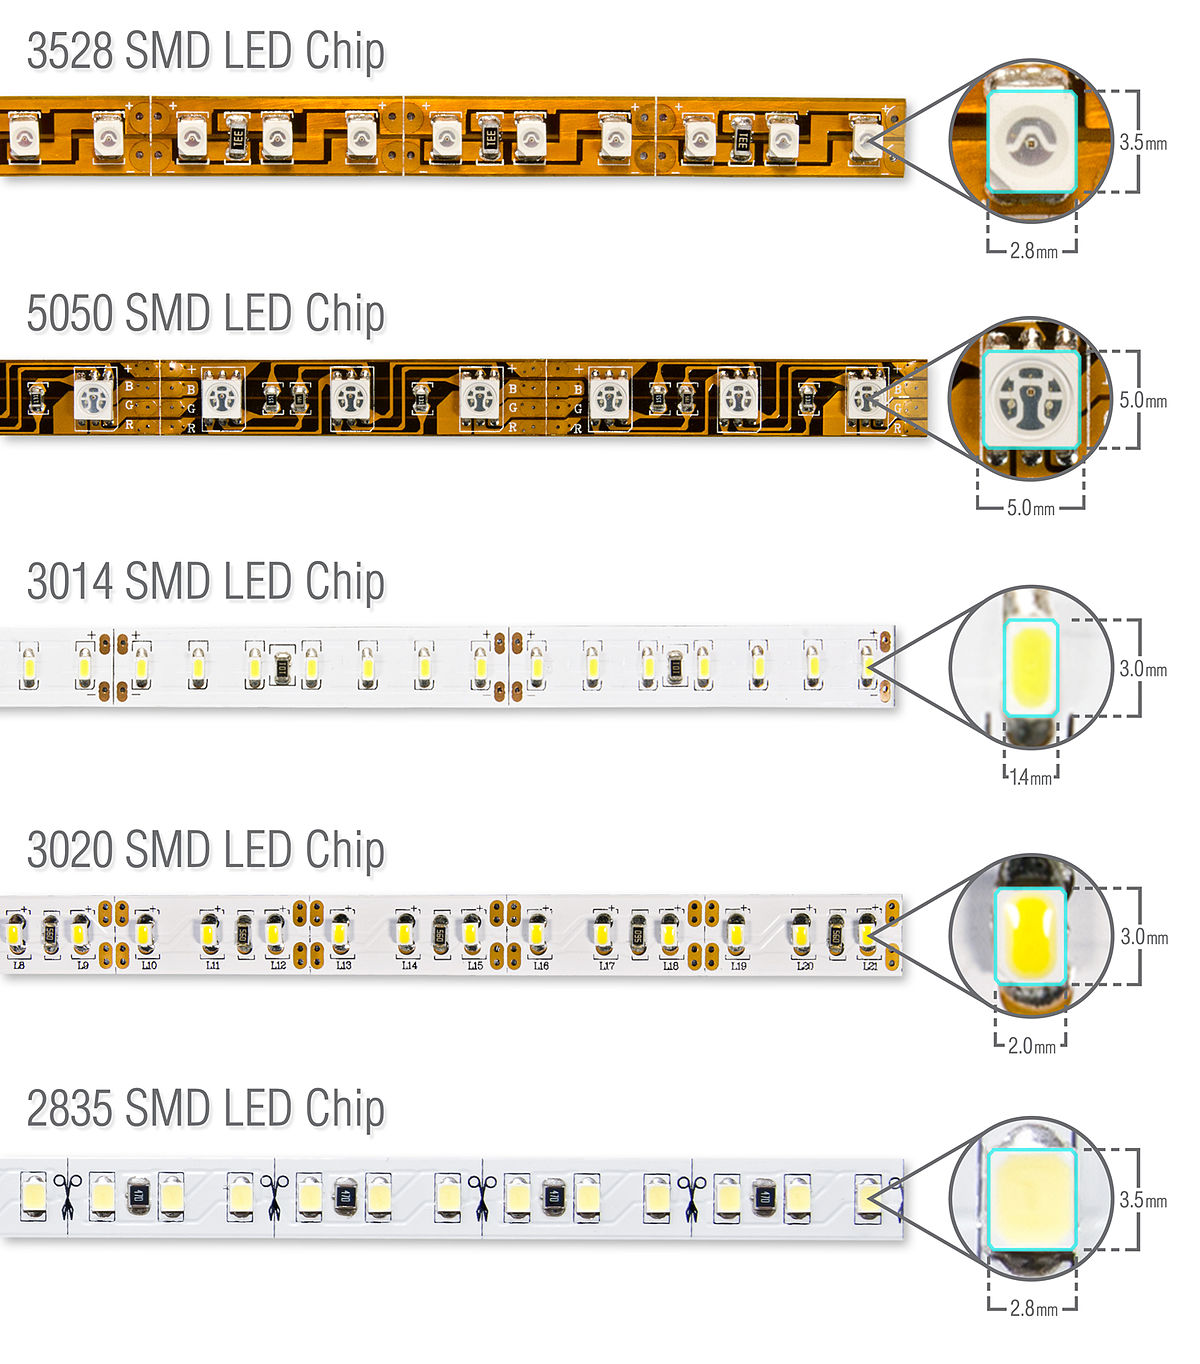 1200px SMD LED comparison 5050 2835 3528 3014 Flexfireleds led strip light wikipedia 5050 Matamoros at gsmx.co